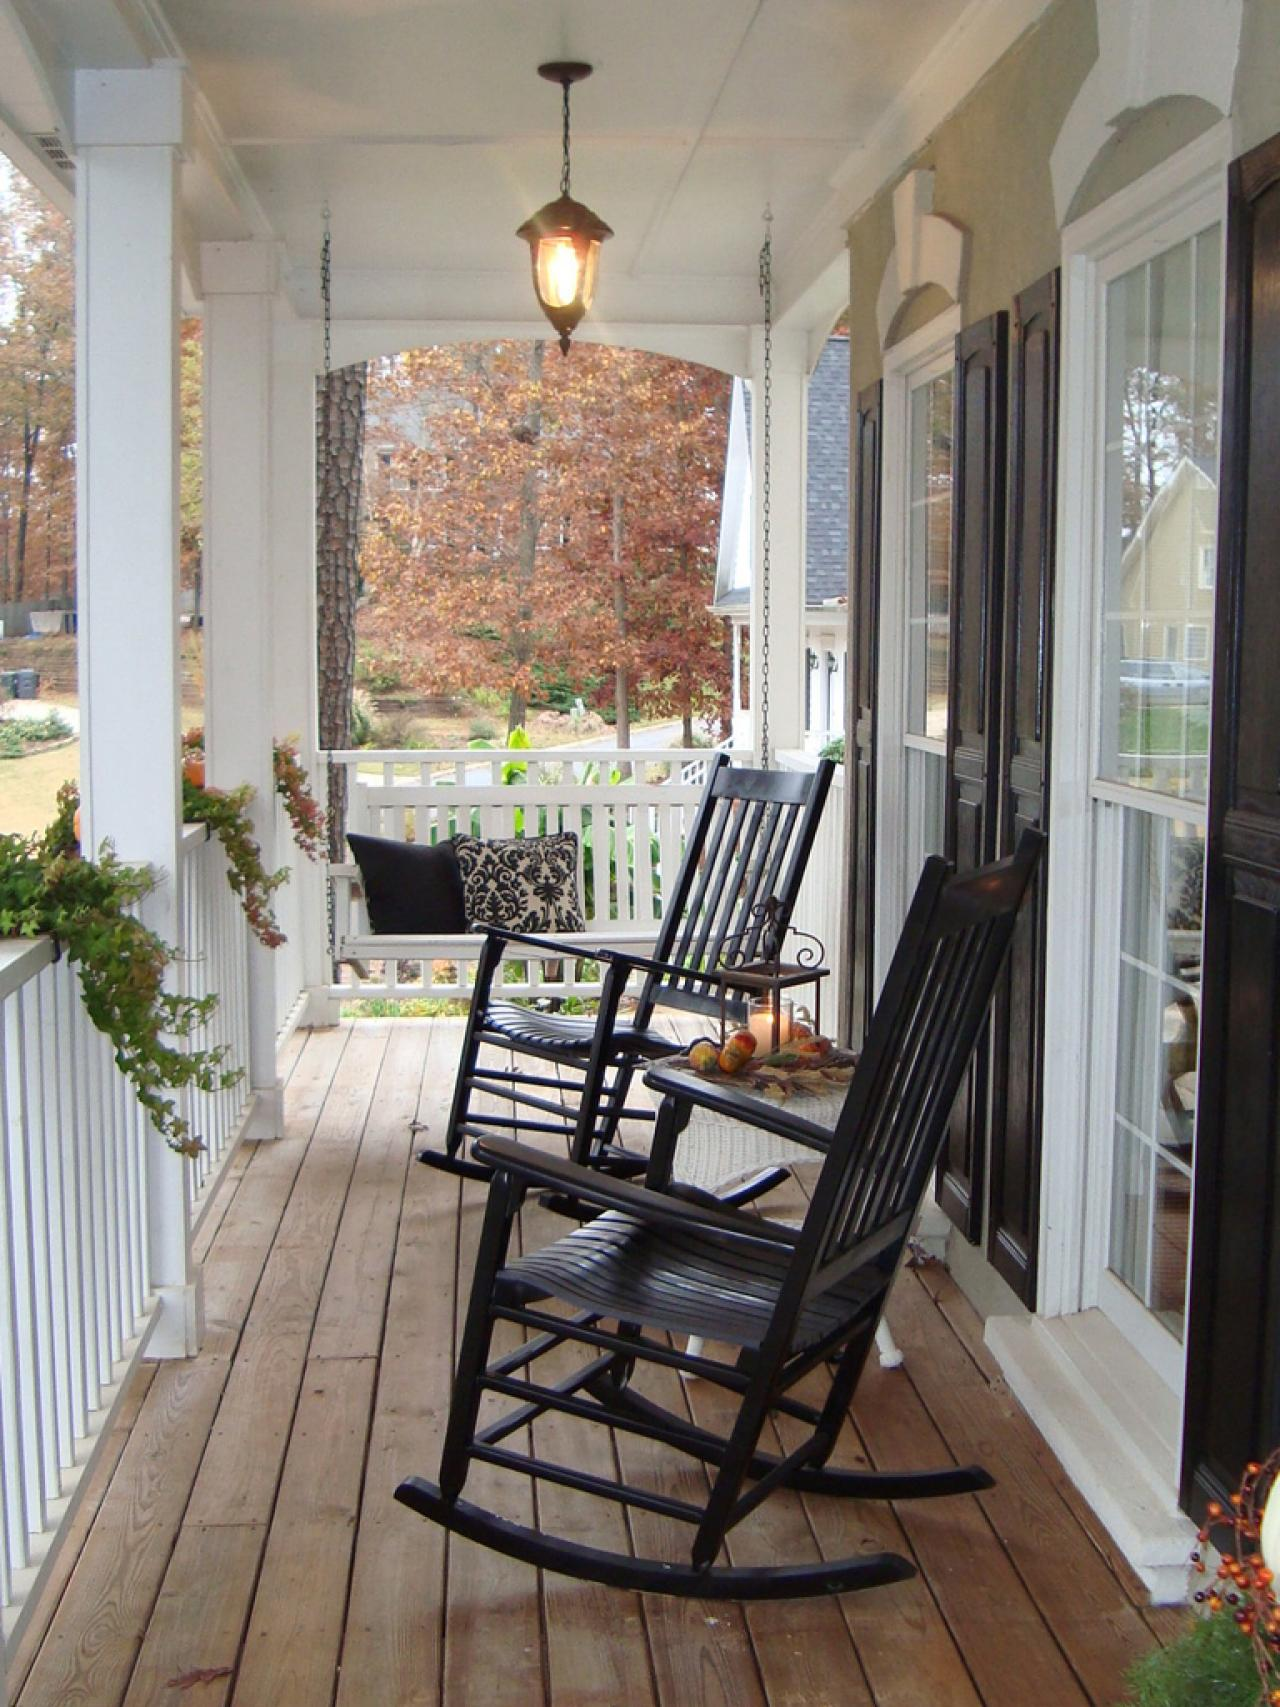 Porch furniture and accessories hgtv for Outdoor furniture for small front porch